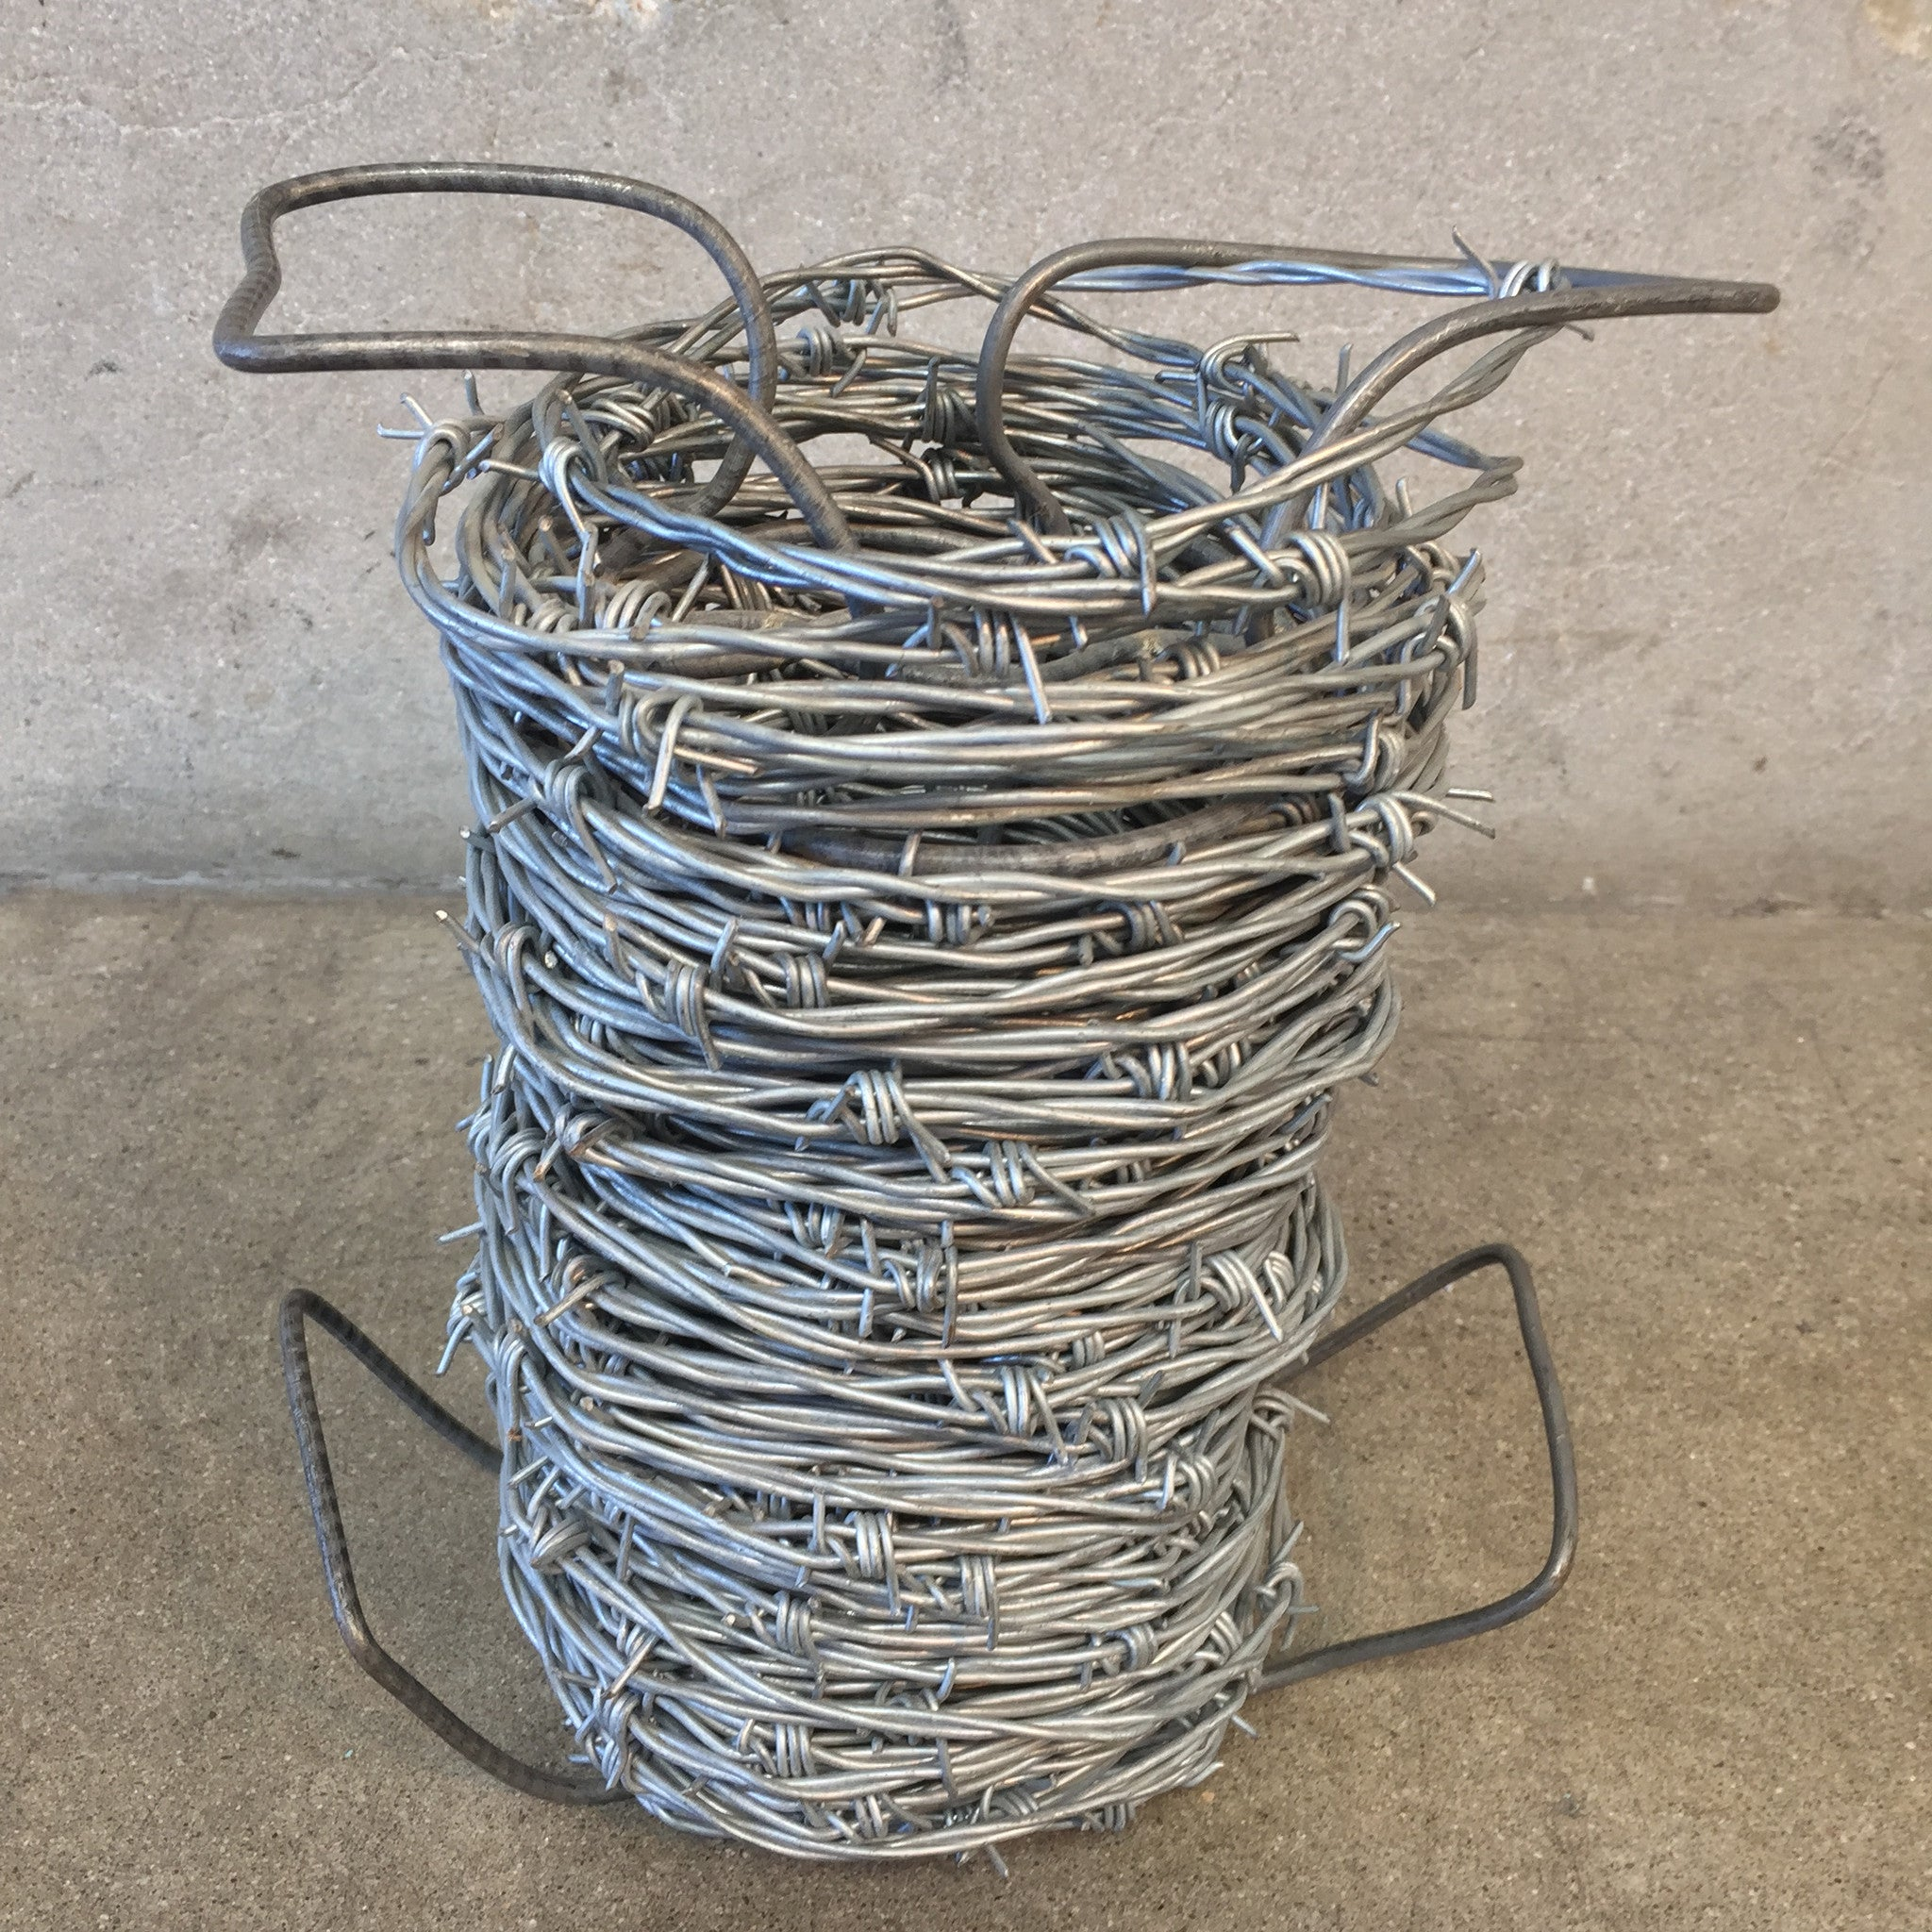 Spool of Ranchers Barbed Wire – UrbanAmericana